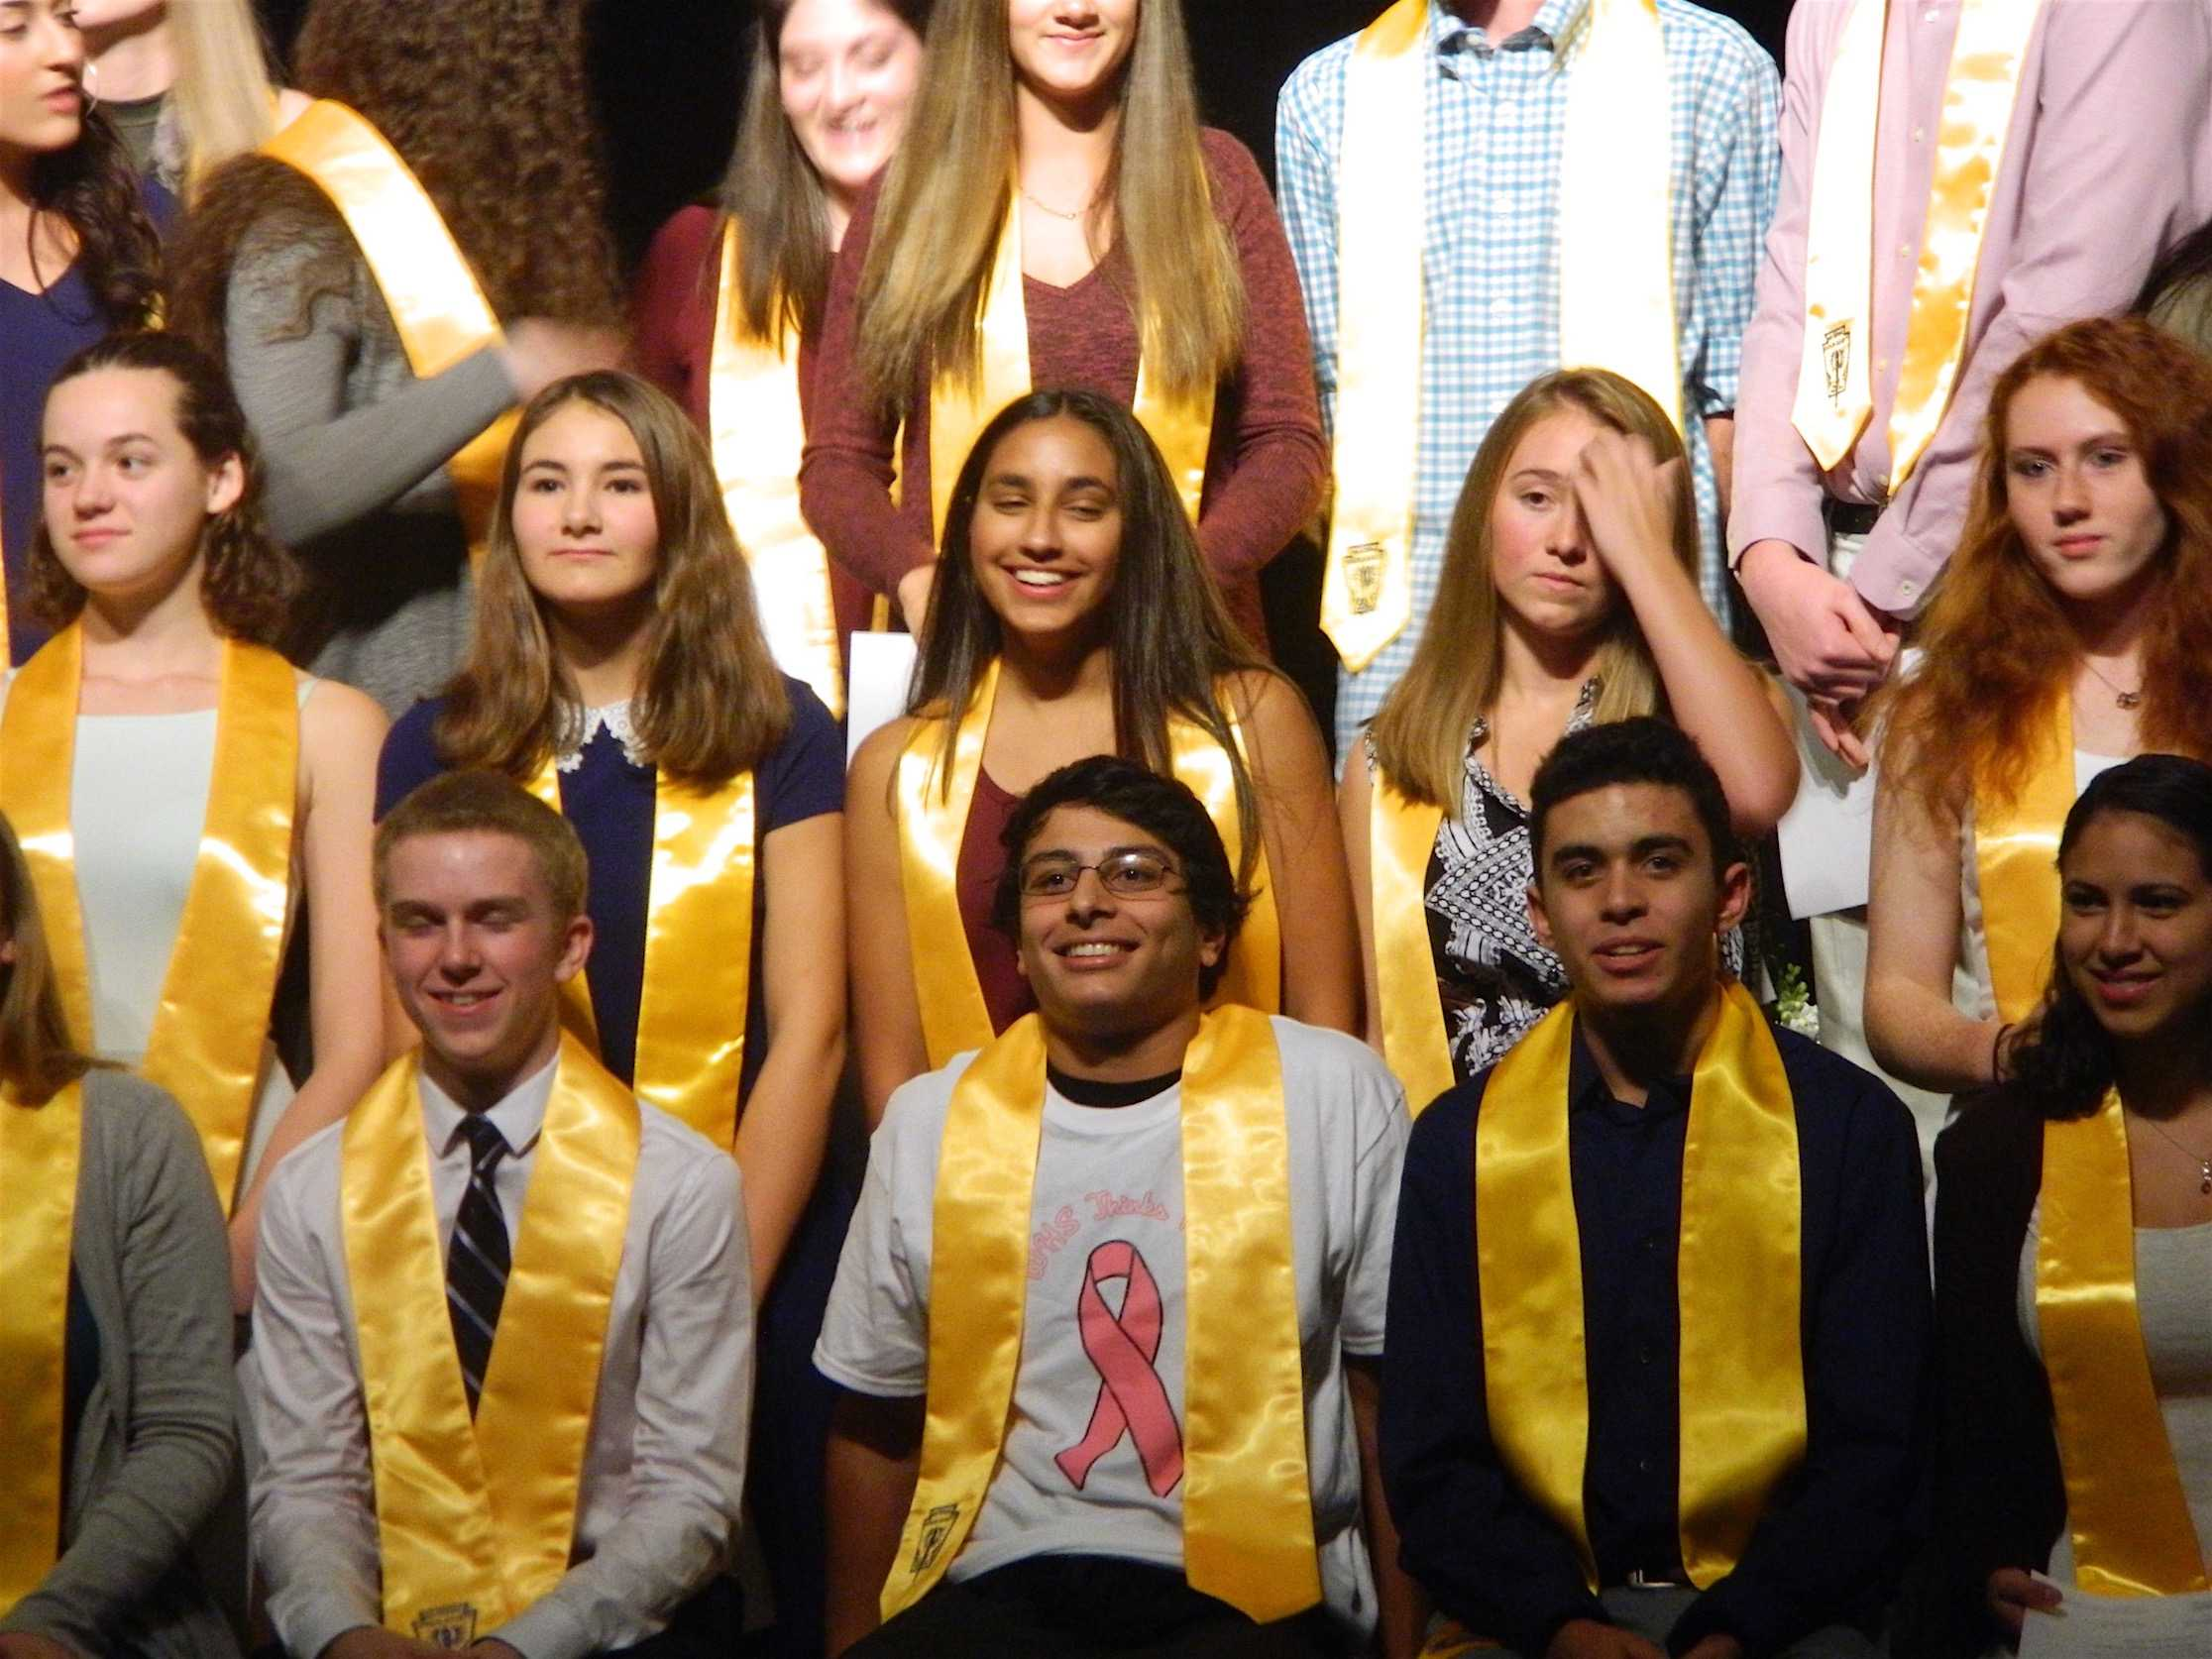 the raider times watertown high inducts 65 students into watertown high school inducted 65 juniors and seniors into the national honor society during ceremonies oct